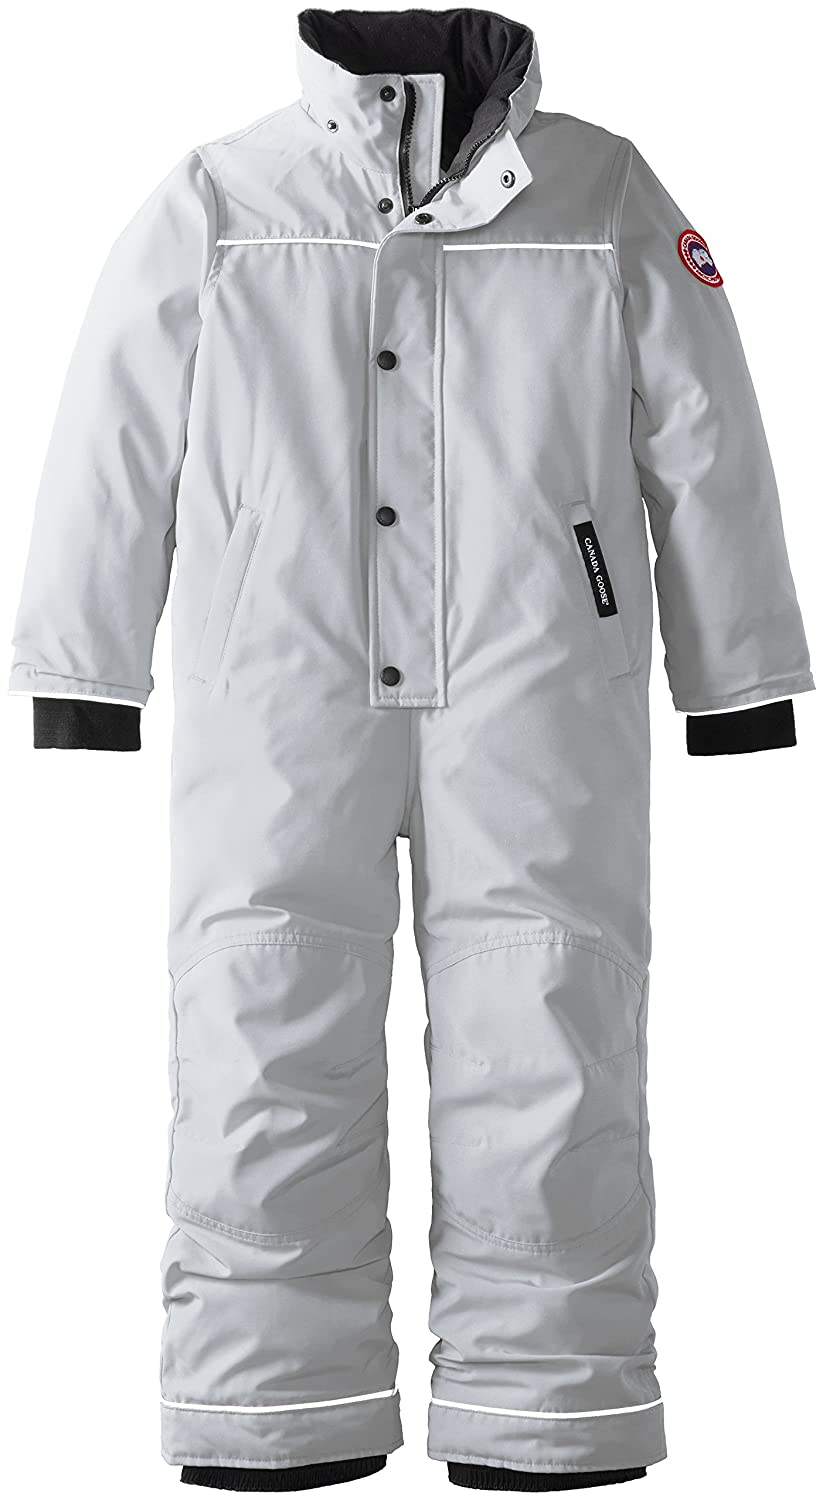 81f8e5557 Canada Goose Kids Grizzly Snowsuit, Silverbirch, 6-7: Amazon.ca: Sports &  Outdoors